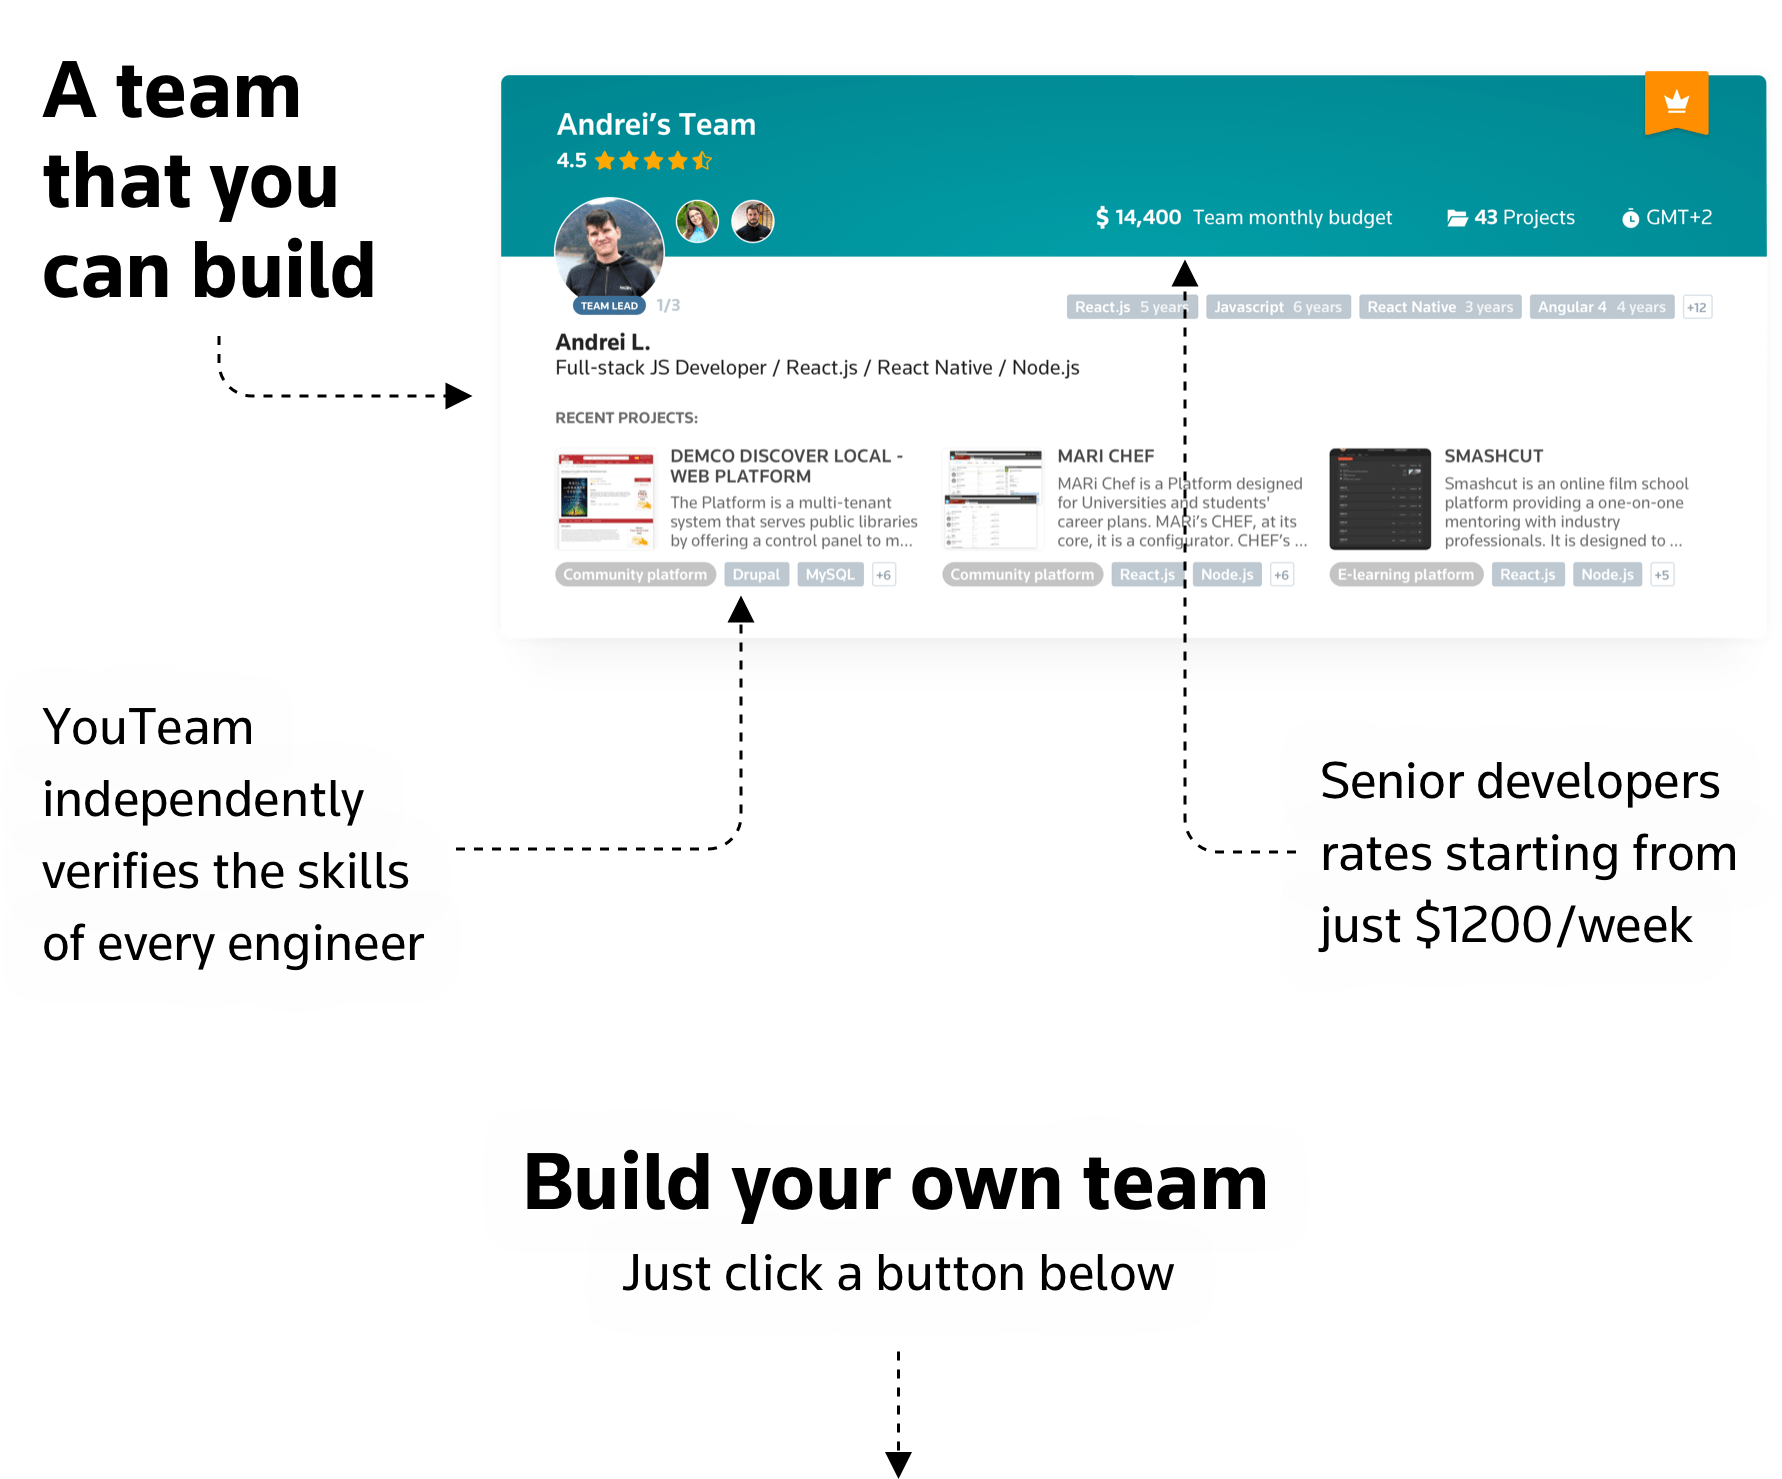 A dev team that you can build on YouTeam